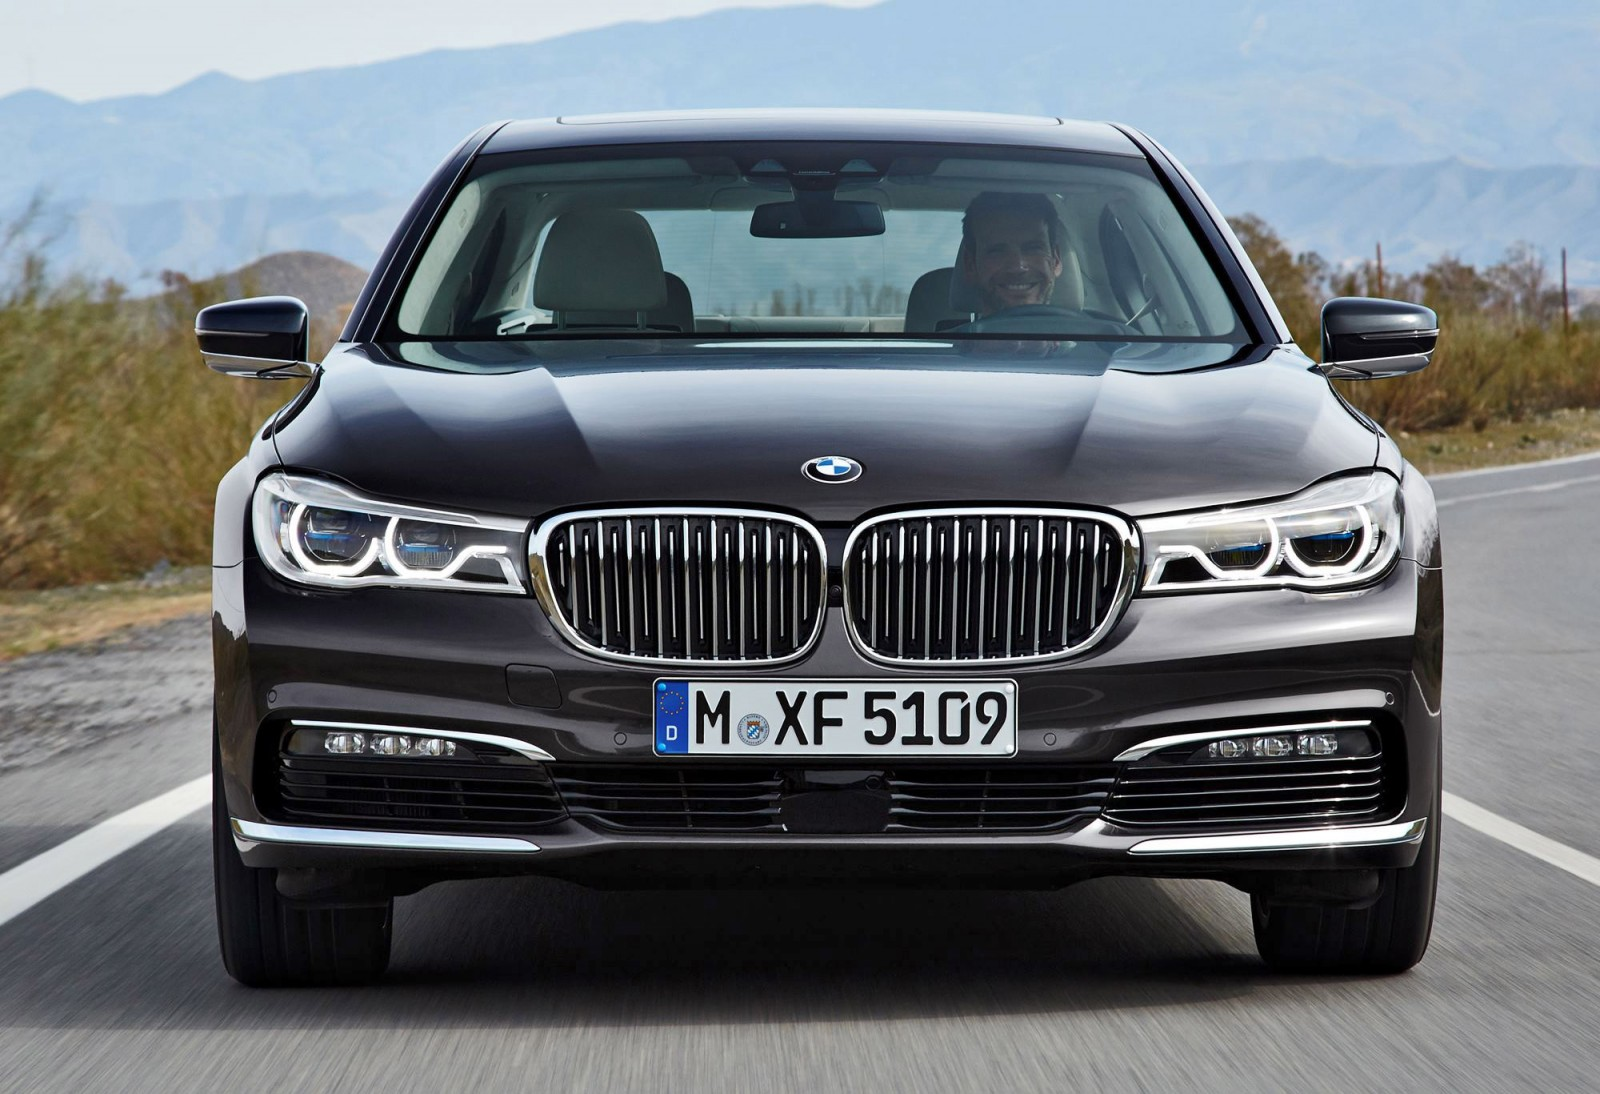 2016 BMW 750 Exterior Photos 6